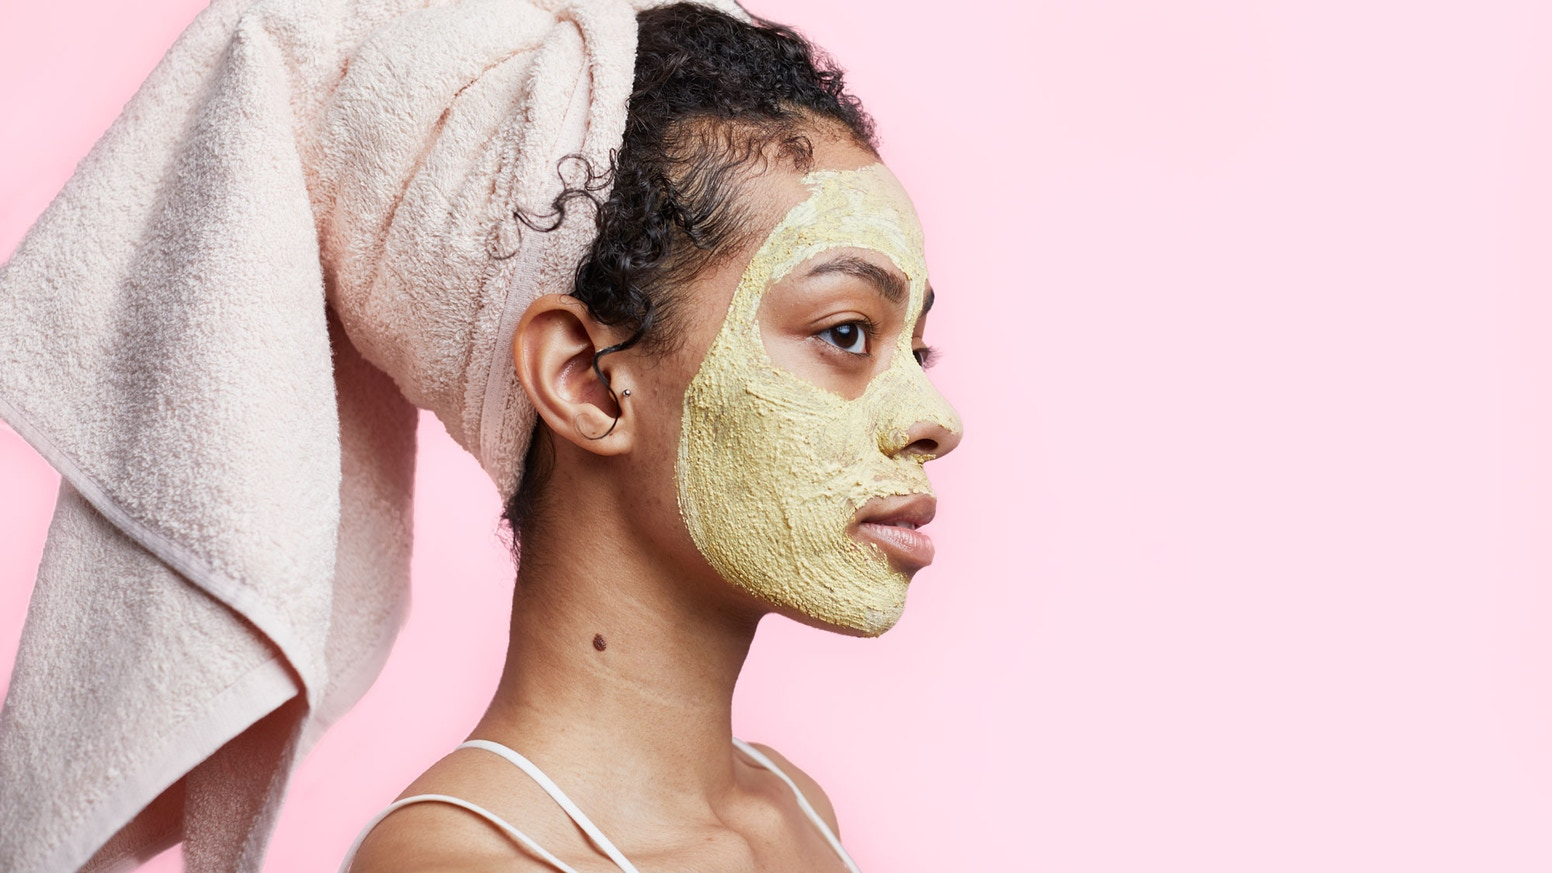 We're a skincare company inspired by a little yellow root that works magic on your skin. It's our mission to help girls be girls.